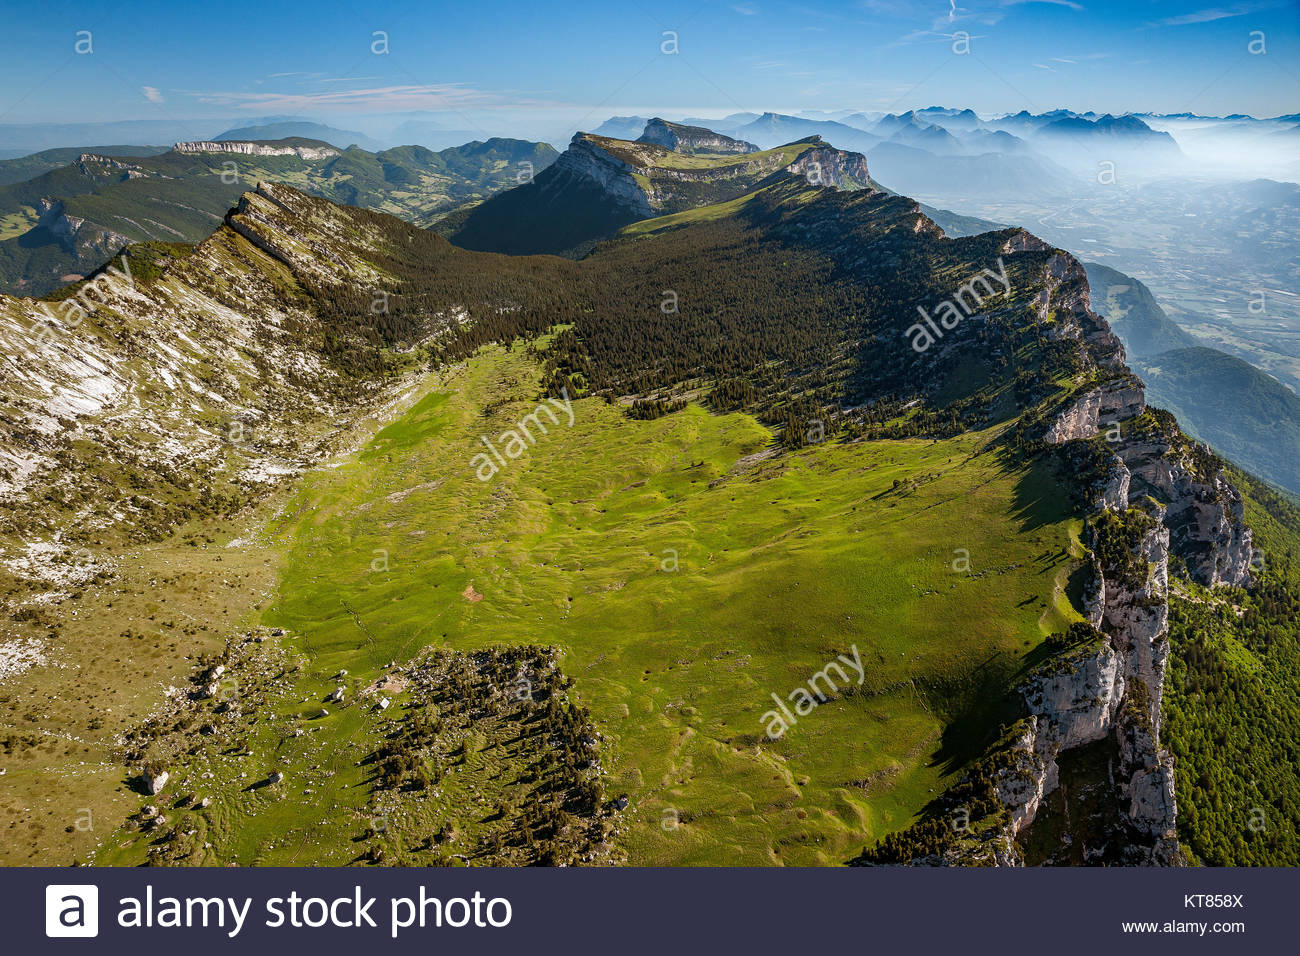 view-from-above-the-rserve-naturelle-des